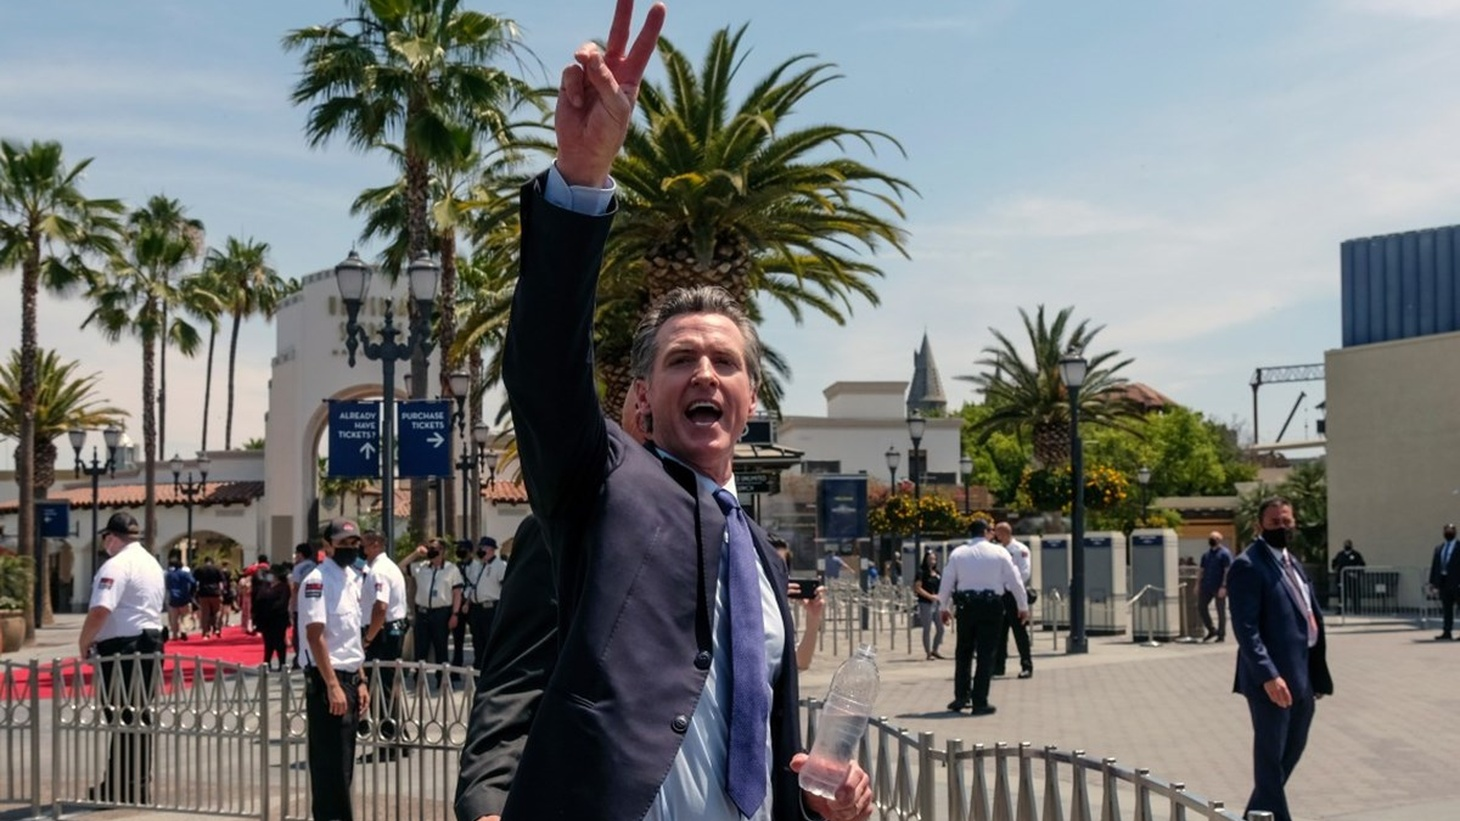 In this June 15, 2021 file photo California Governor Gavin Newsom gestures after a news conference at Universal Studios in Universal City, Calif.